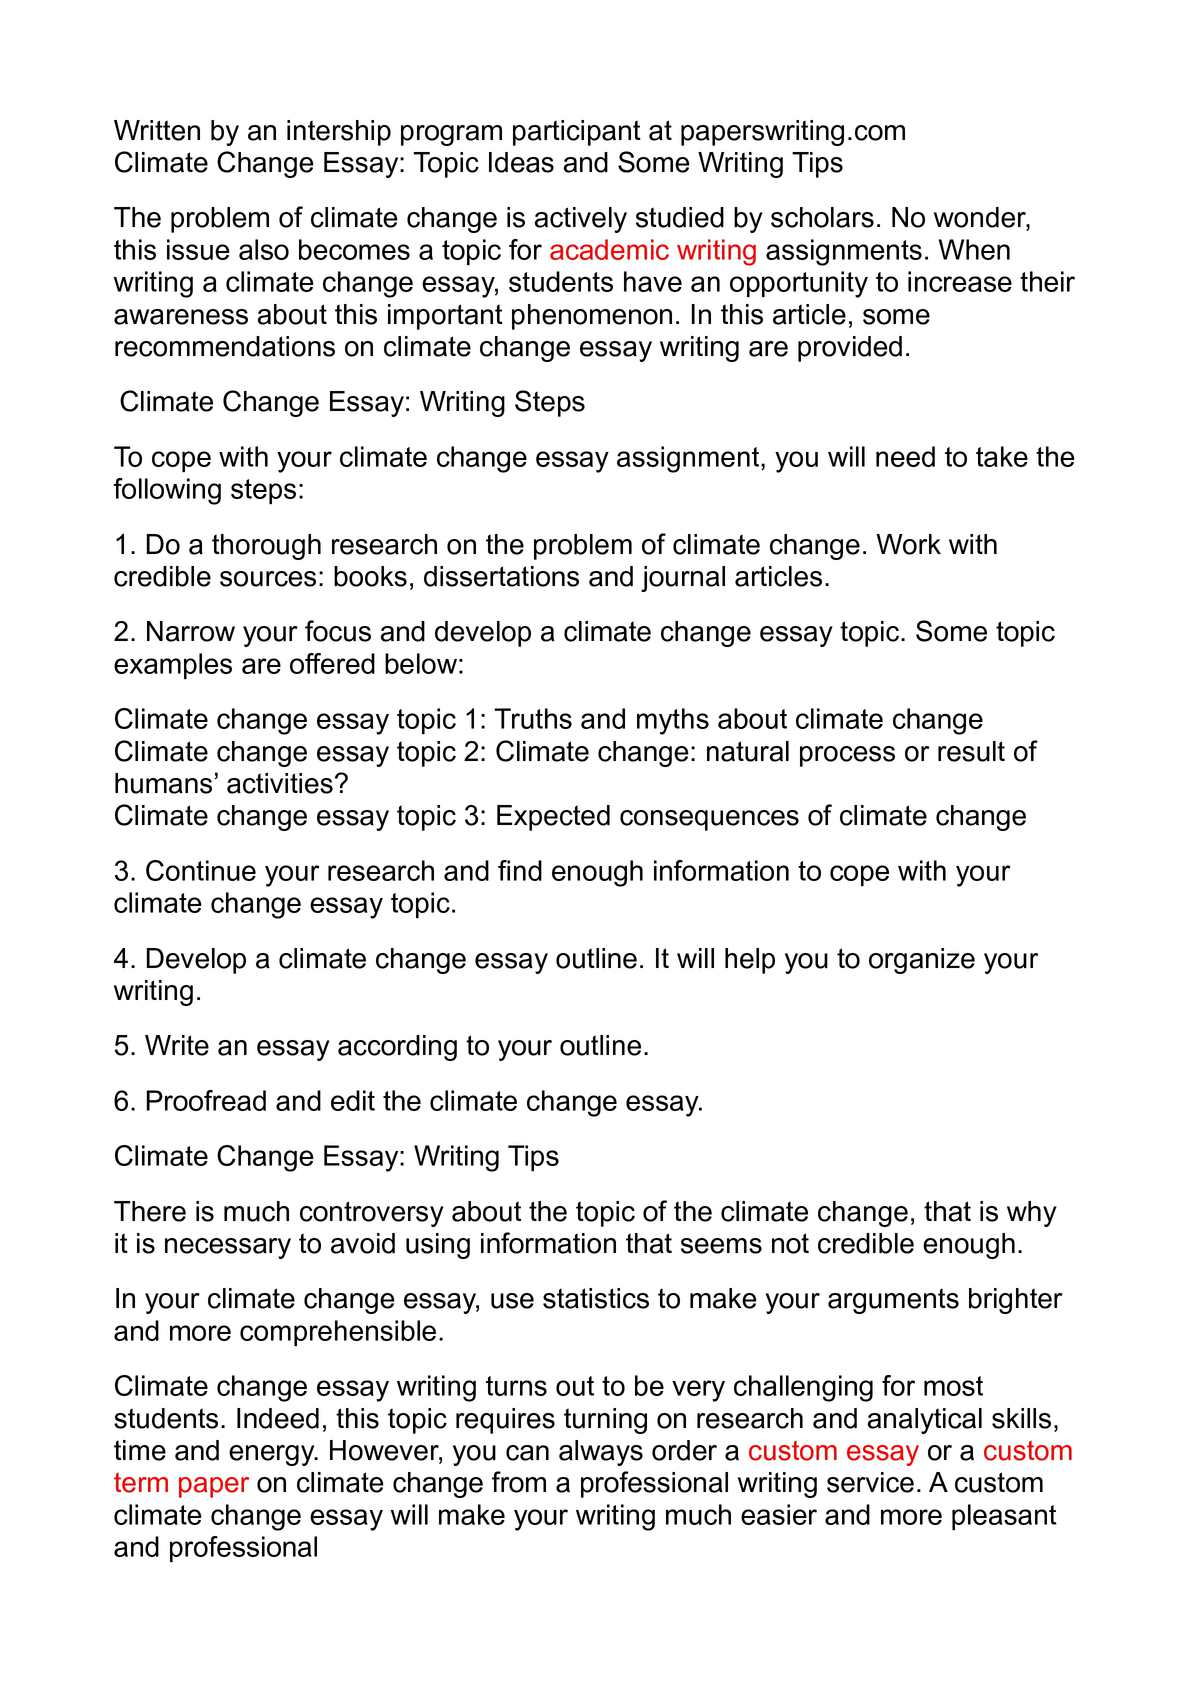 012 Climate Change Essay Topics Uncategorized Global Warming Topic Ways To St Oracleboss Research Paper20 Paper Unusual Ideas For Developmental Psychology Unique High School American History Full